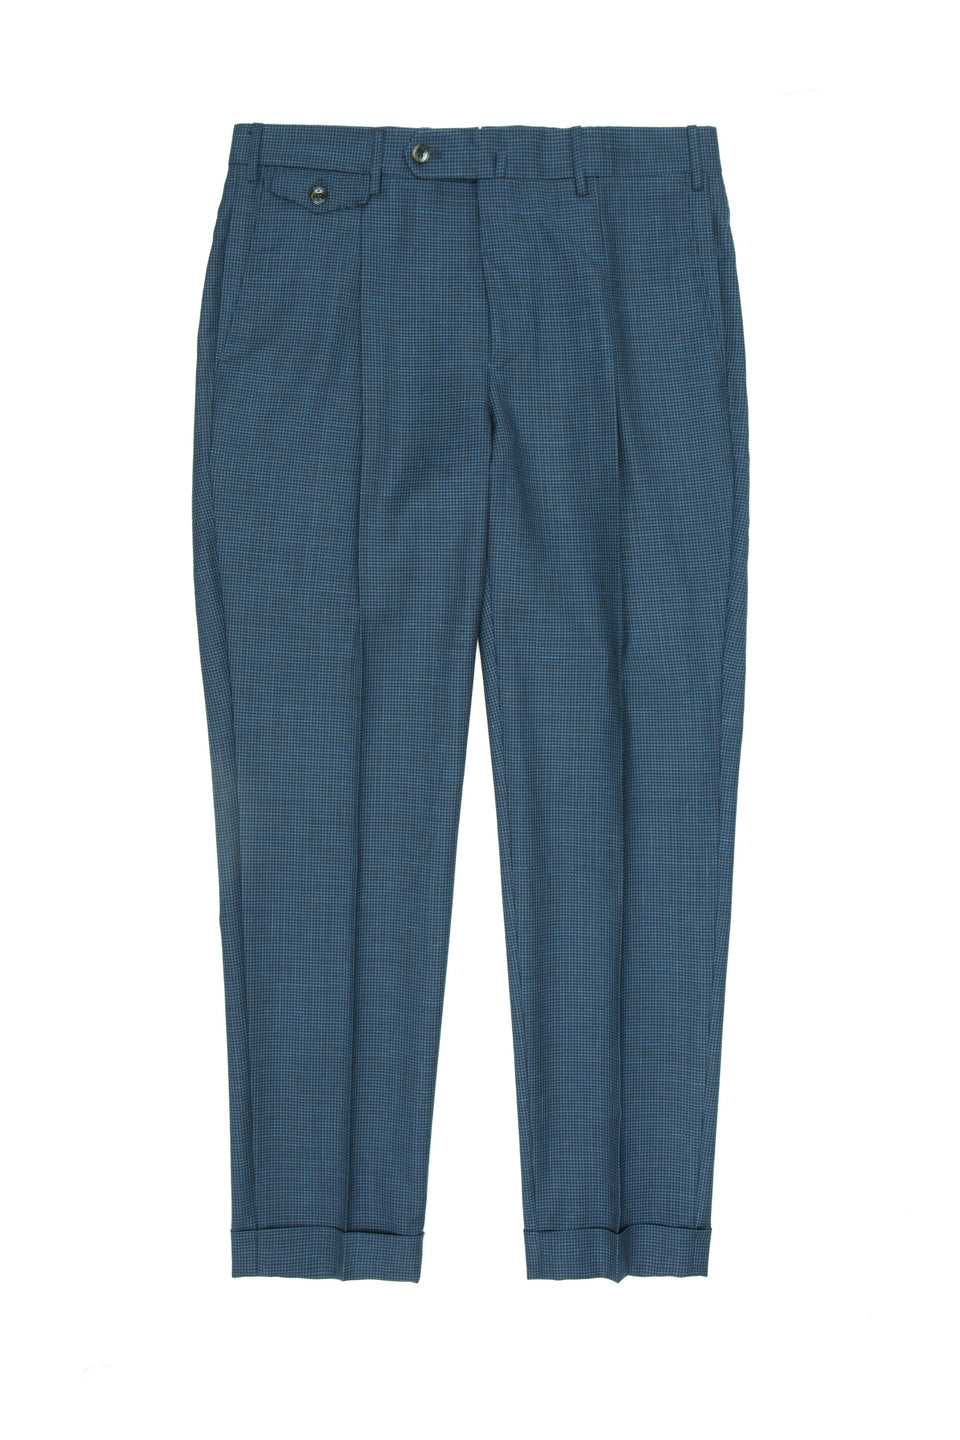 Gentleman Fit - 1Pleat - Wool